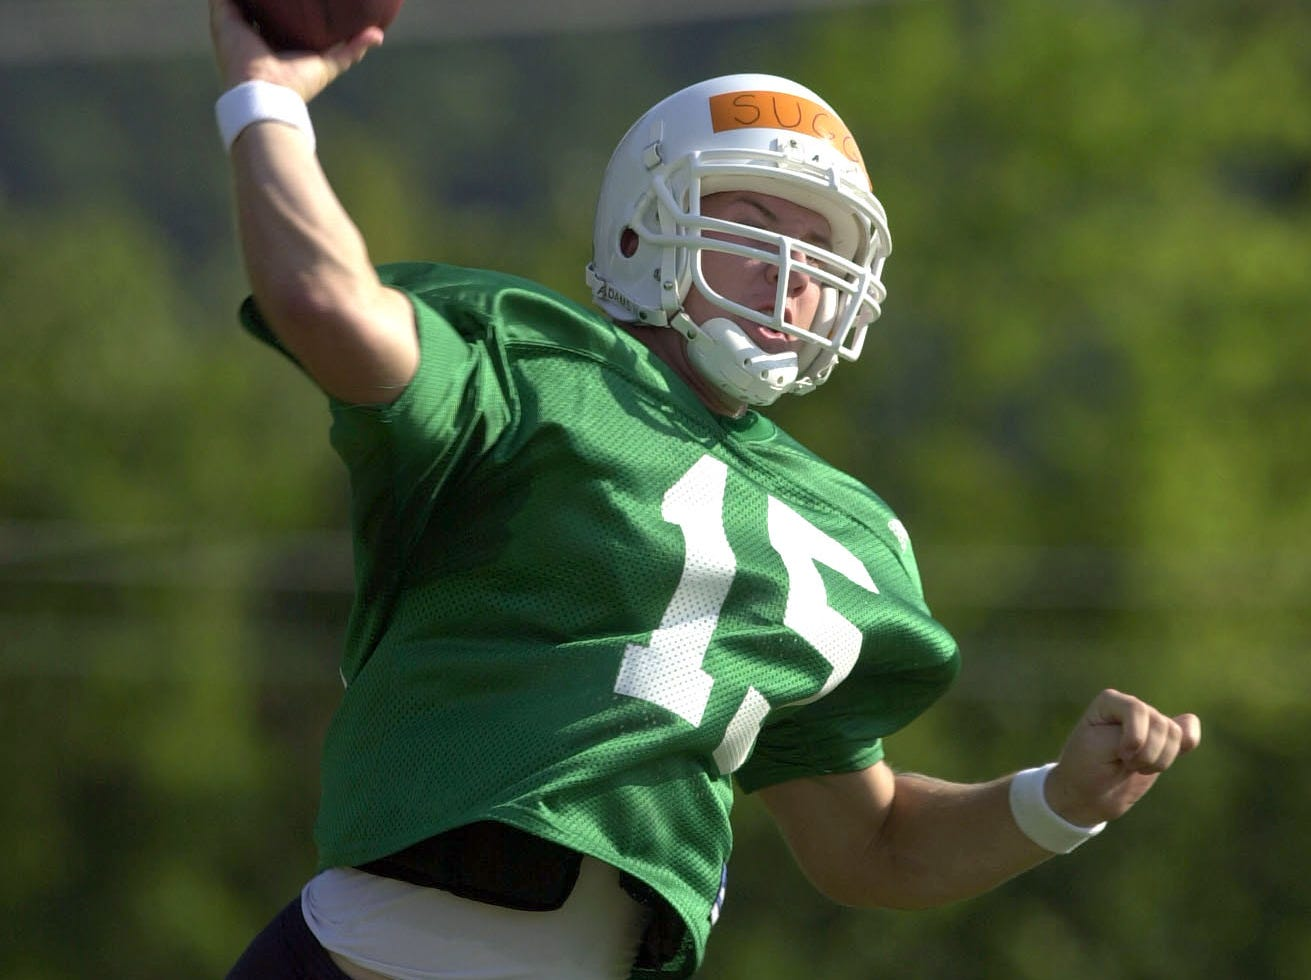 University of Tennessee quarterback A.J. Suggs throws a pass during practice on Monday, Aug. 14, 2000 at Hudson Field.